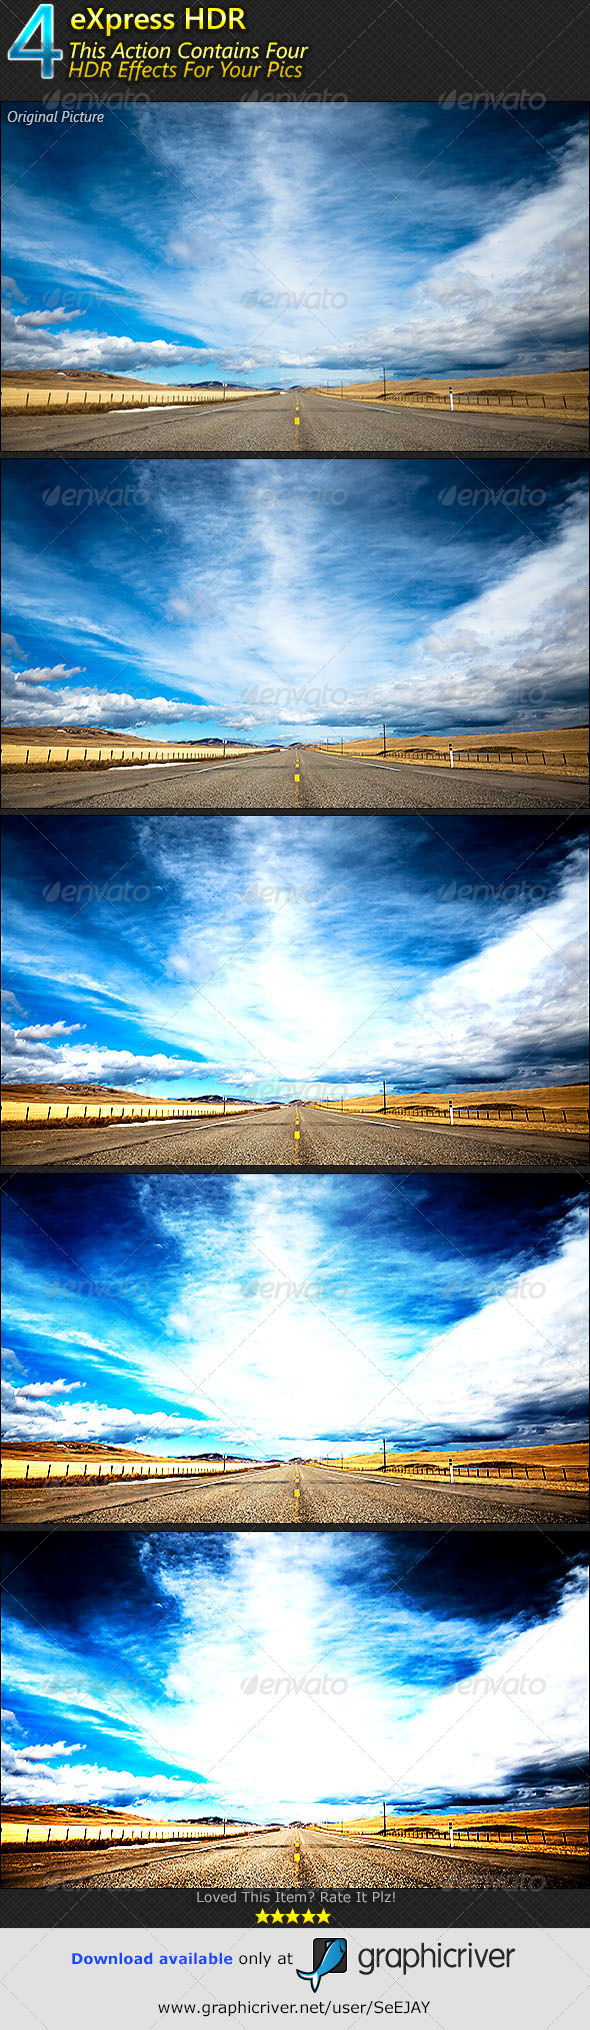 GraphicRiver eXpress HDR 4719361